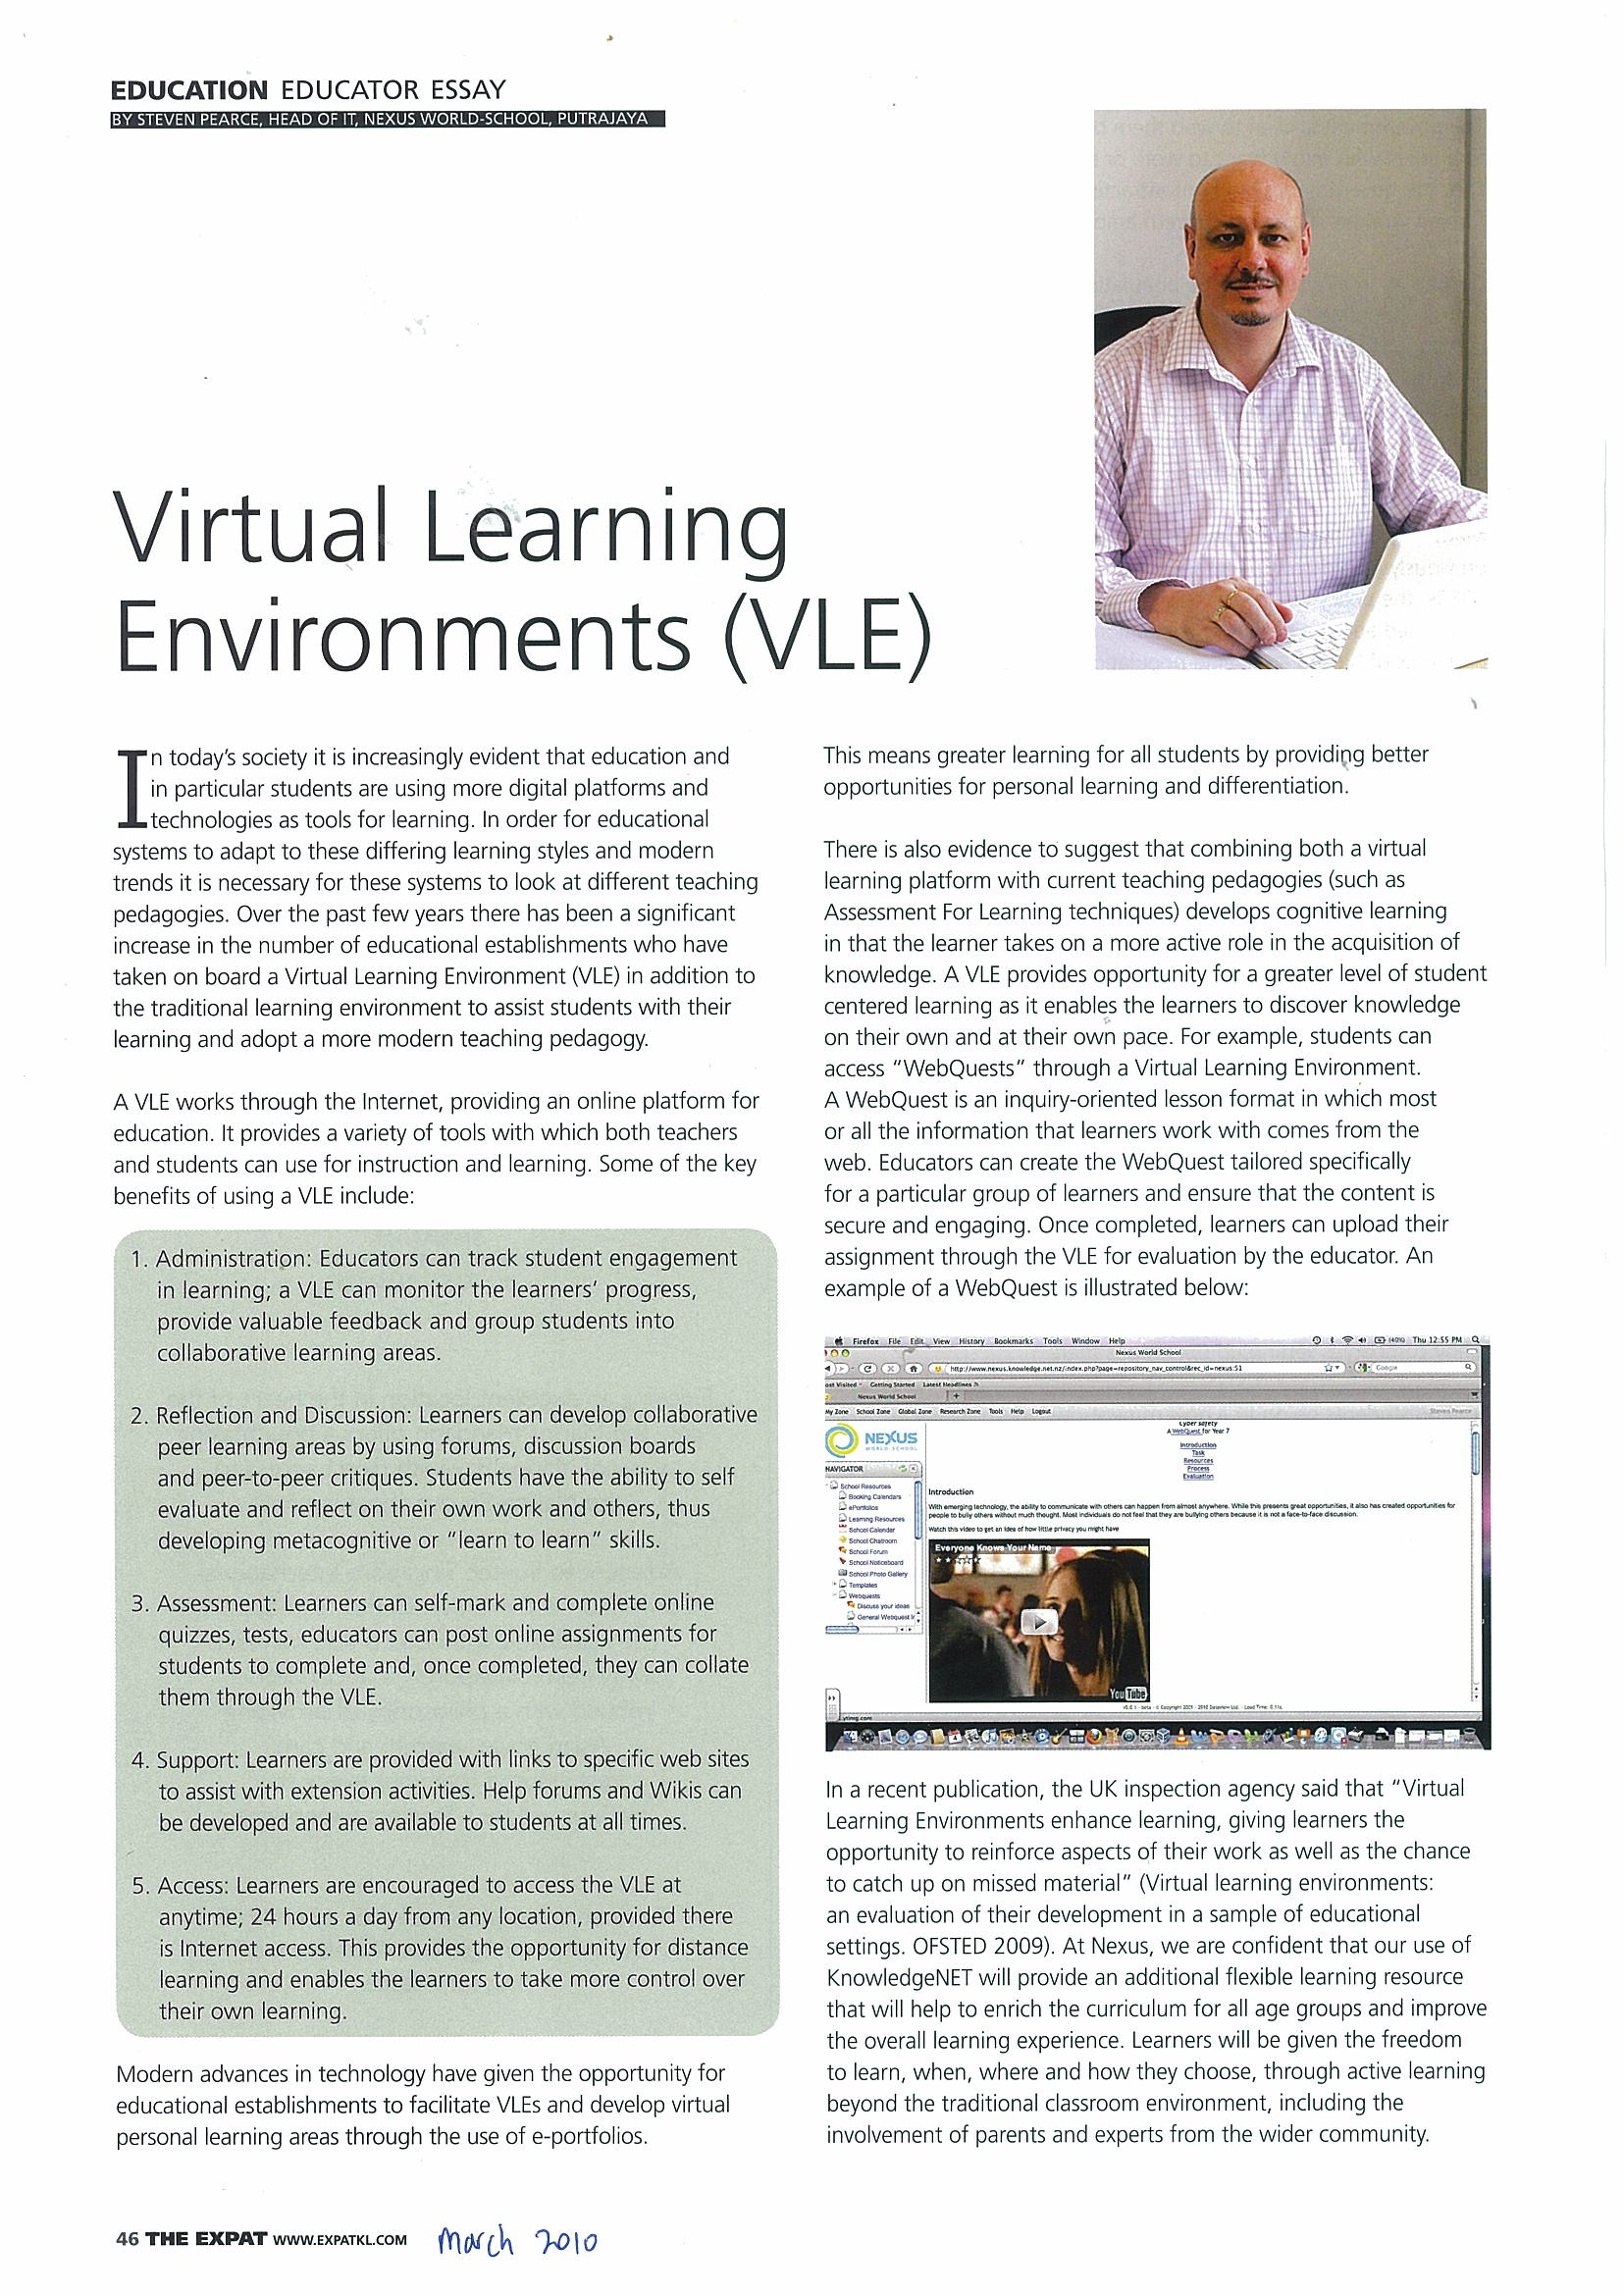 VLE Article